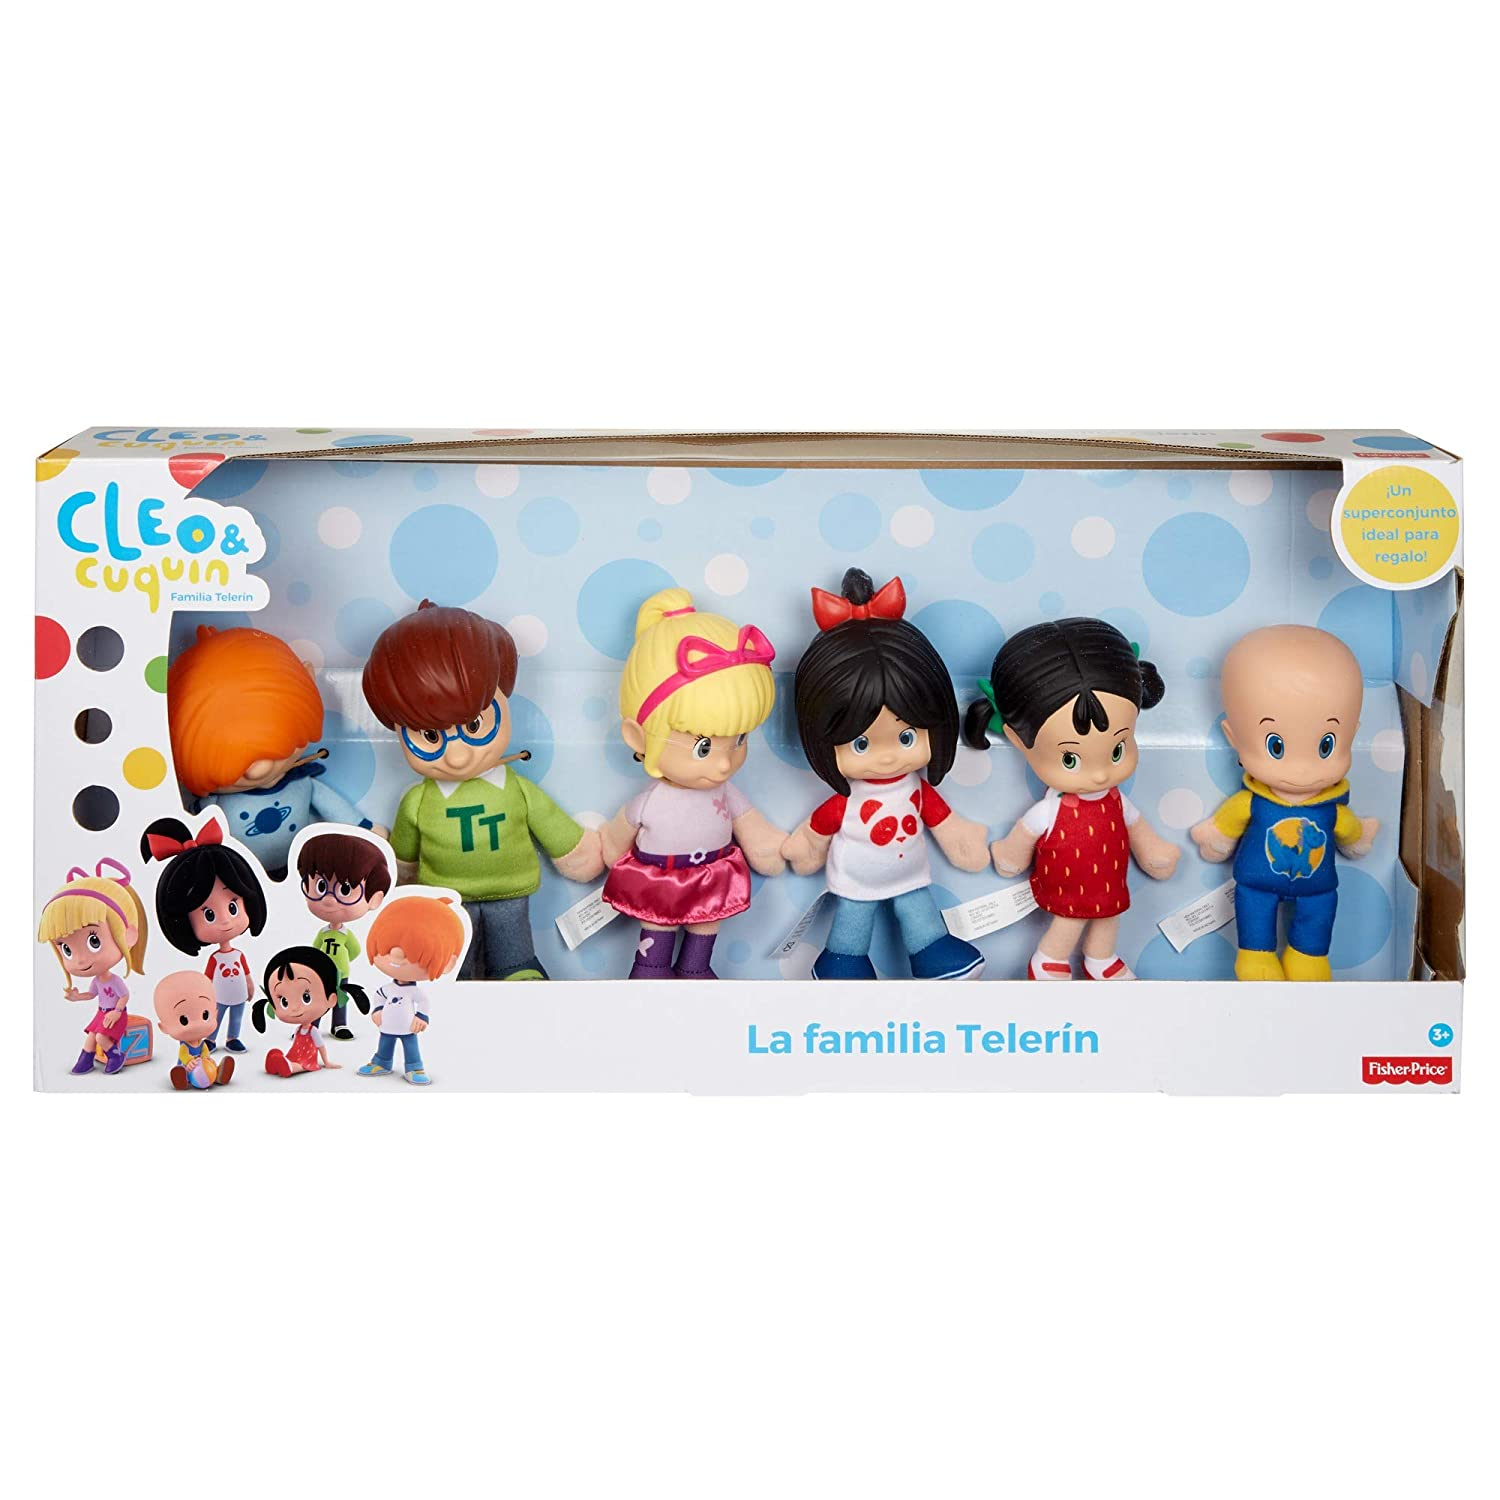 cleo and cuquin pack of sisters family telerin dolls multi colour